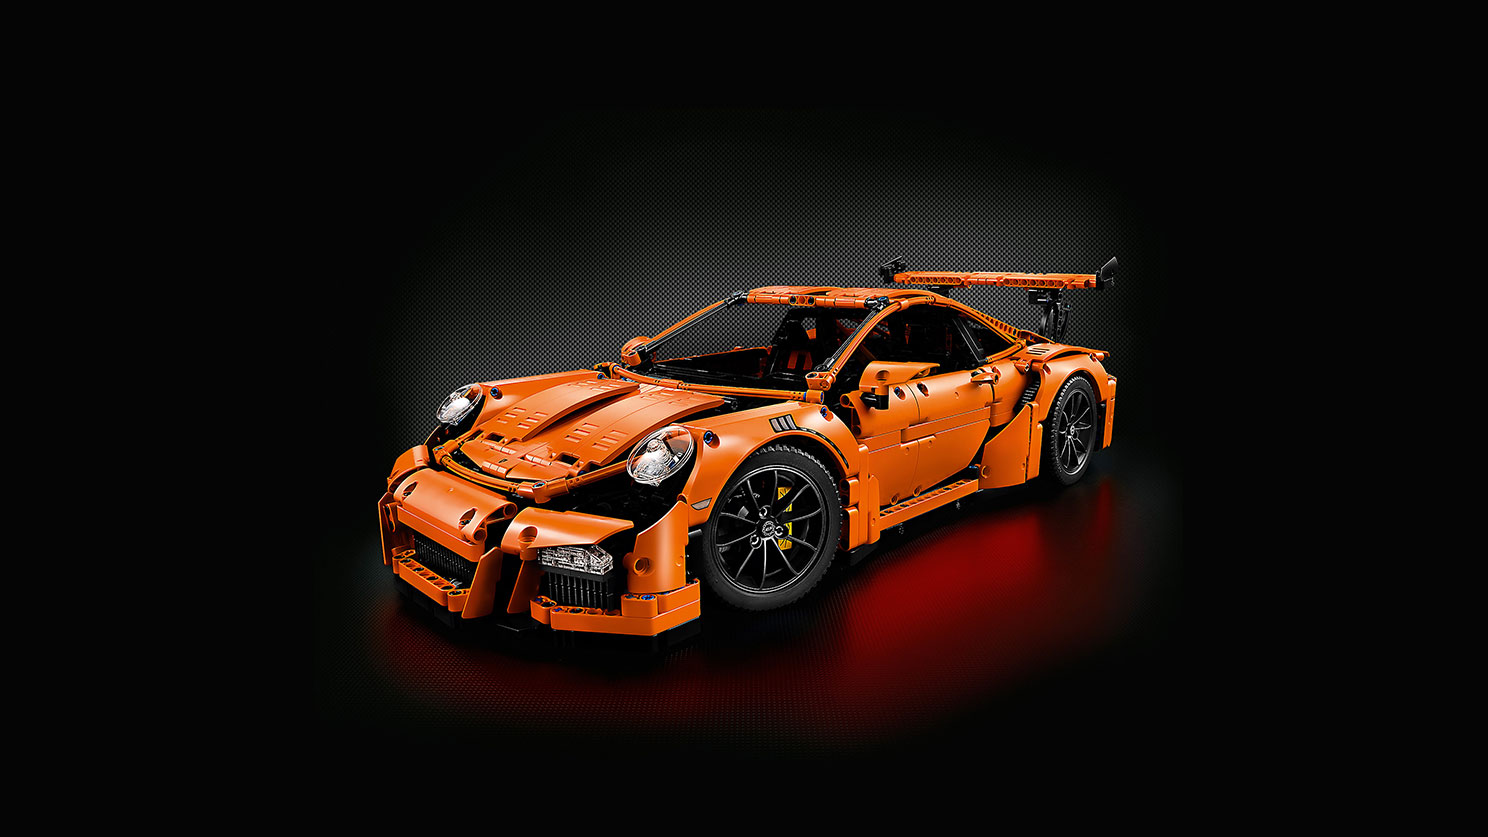 Car Stereo Wallpaper Porsche 911 Gt3 Rs By Lego Choice Gear